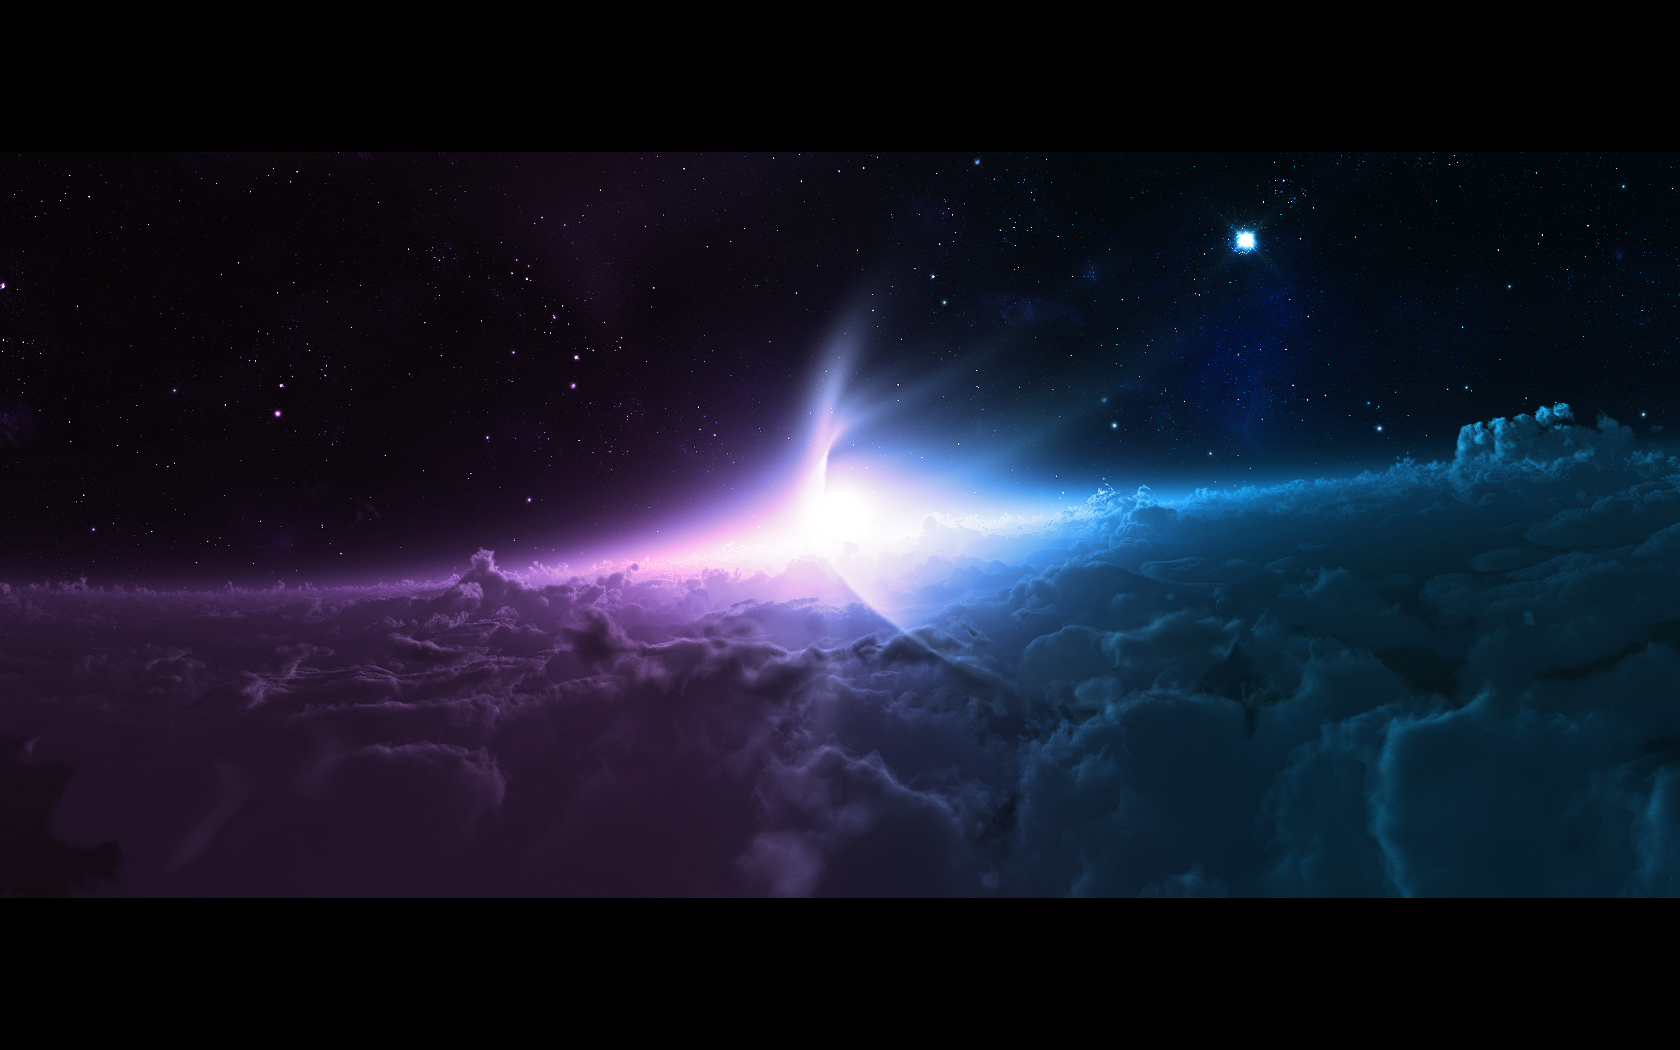 Space Fantasy Wallpaper Set 29 Awesome Wallpapers HD Wallpapers Download Free Images Wallpaper [1000image.com]